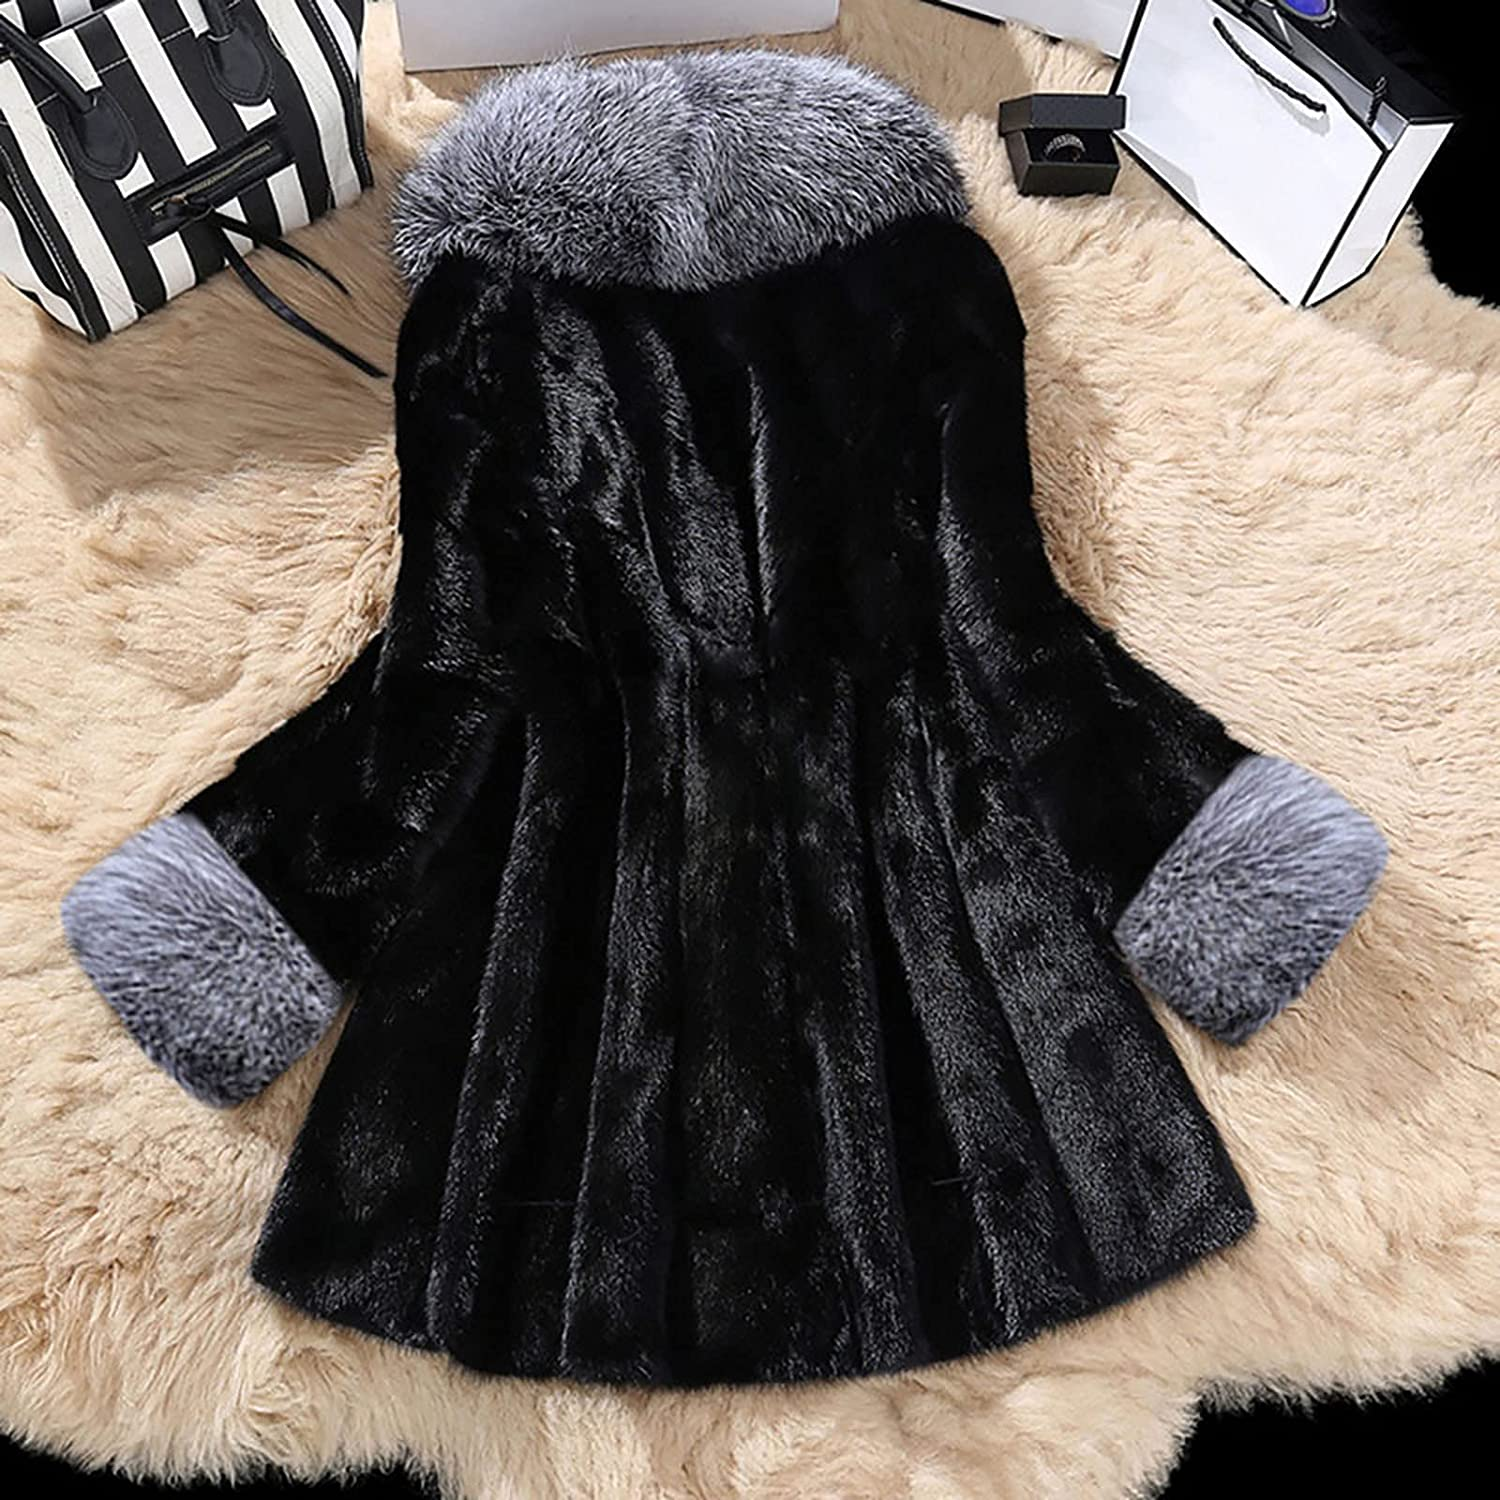 Women's Winter Faux Fur Coat Hooded Warm Overcoat Plush Thick Jackets with Pockets